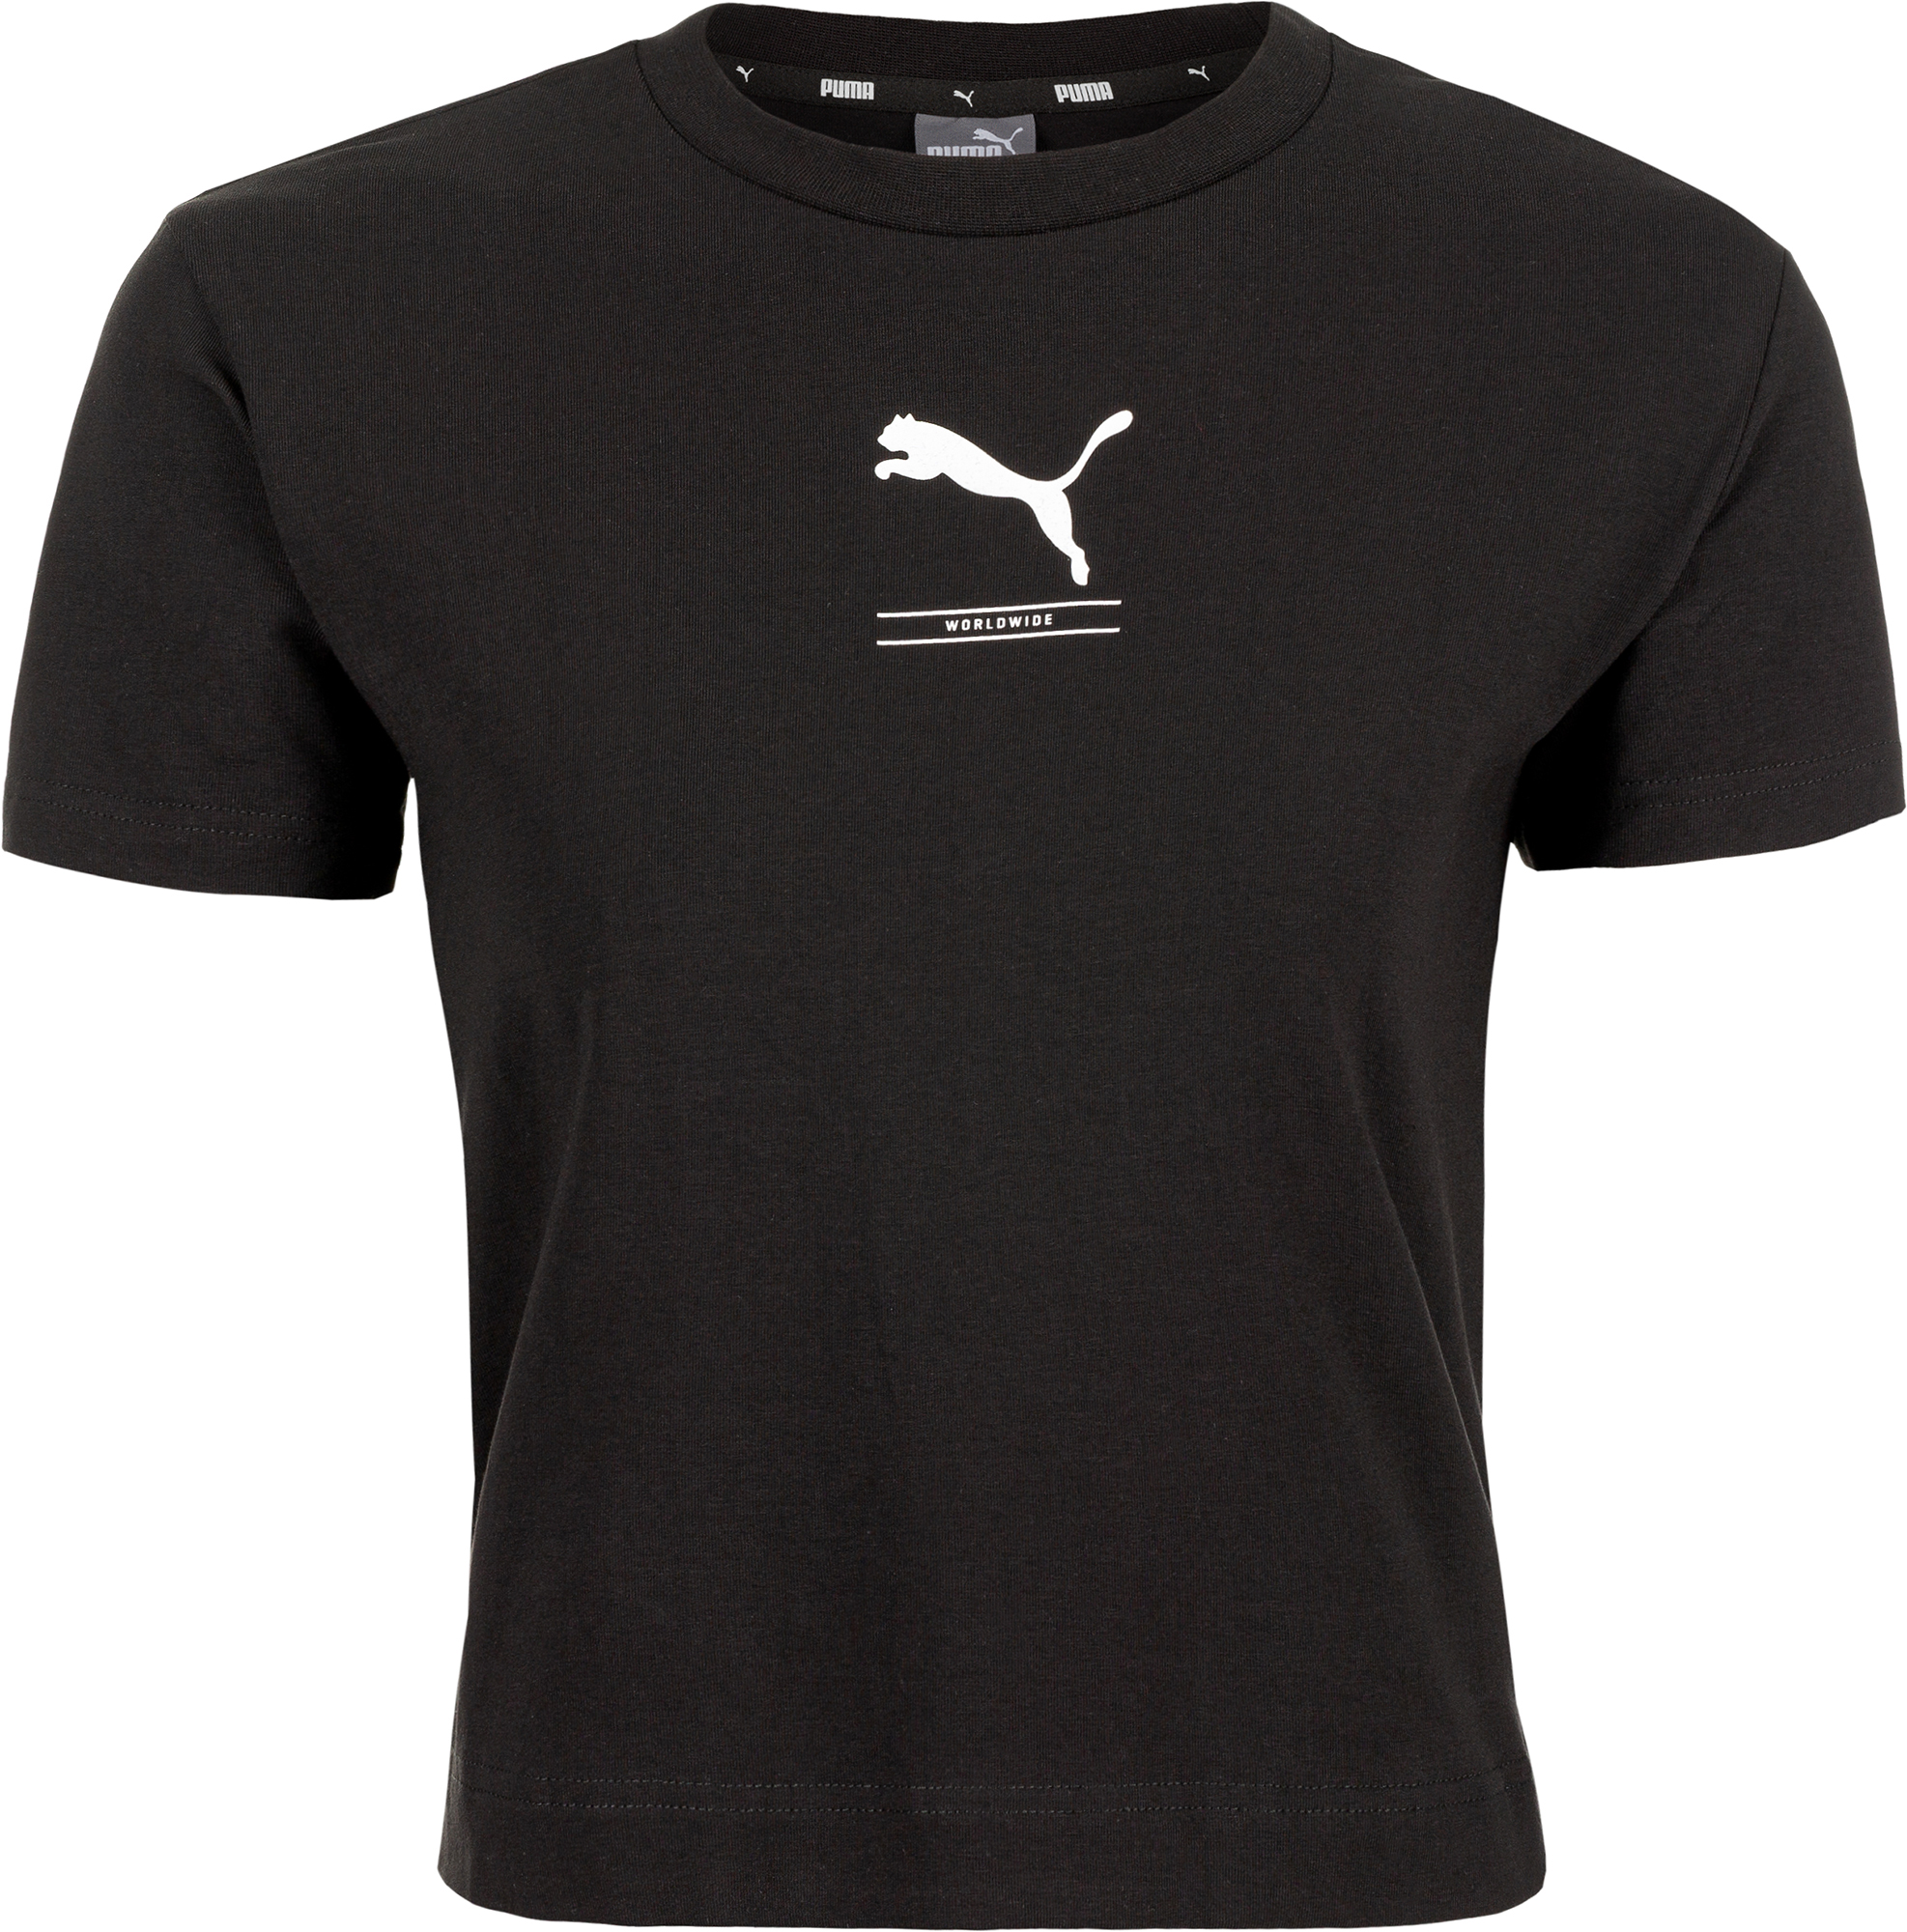 Puma Футболка женская Puma Nu-tility Fitted Tee, размер 44-46 slim striped fitted tee